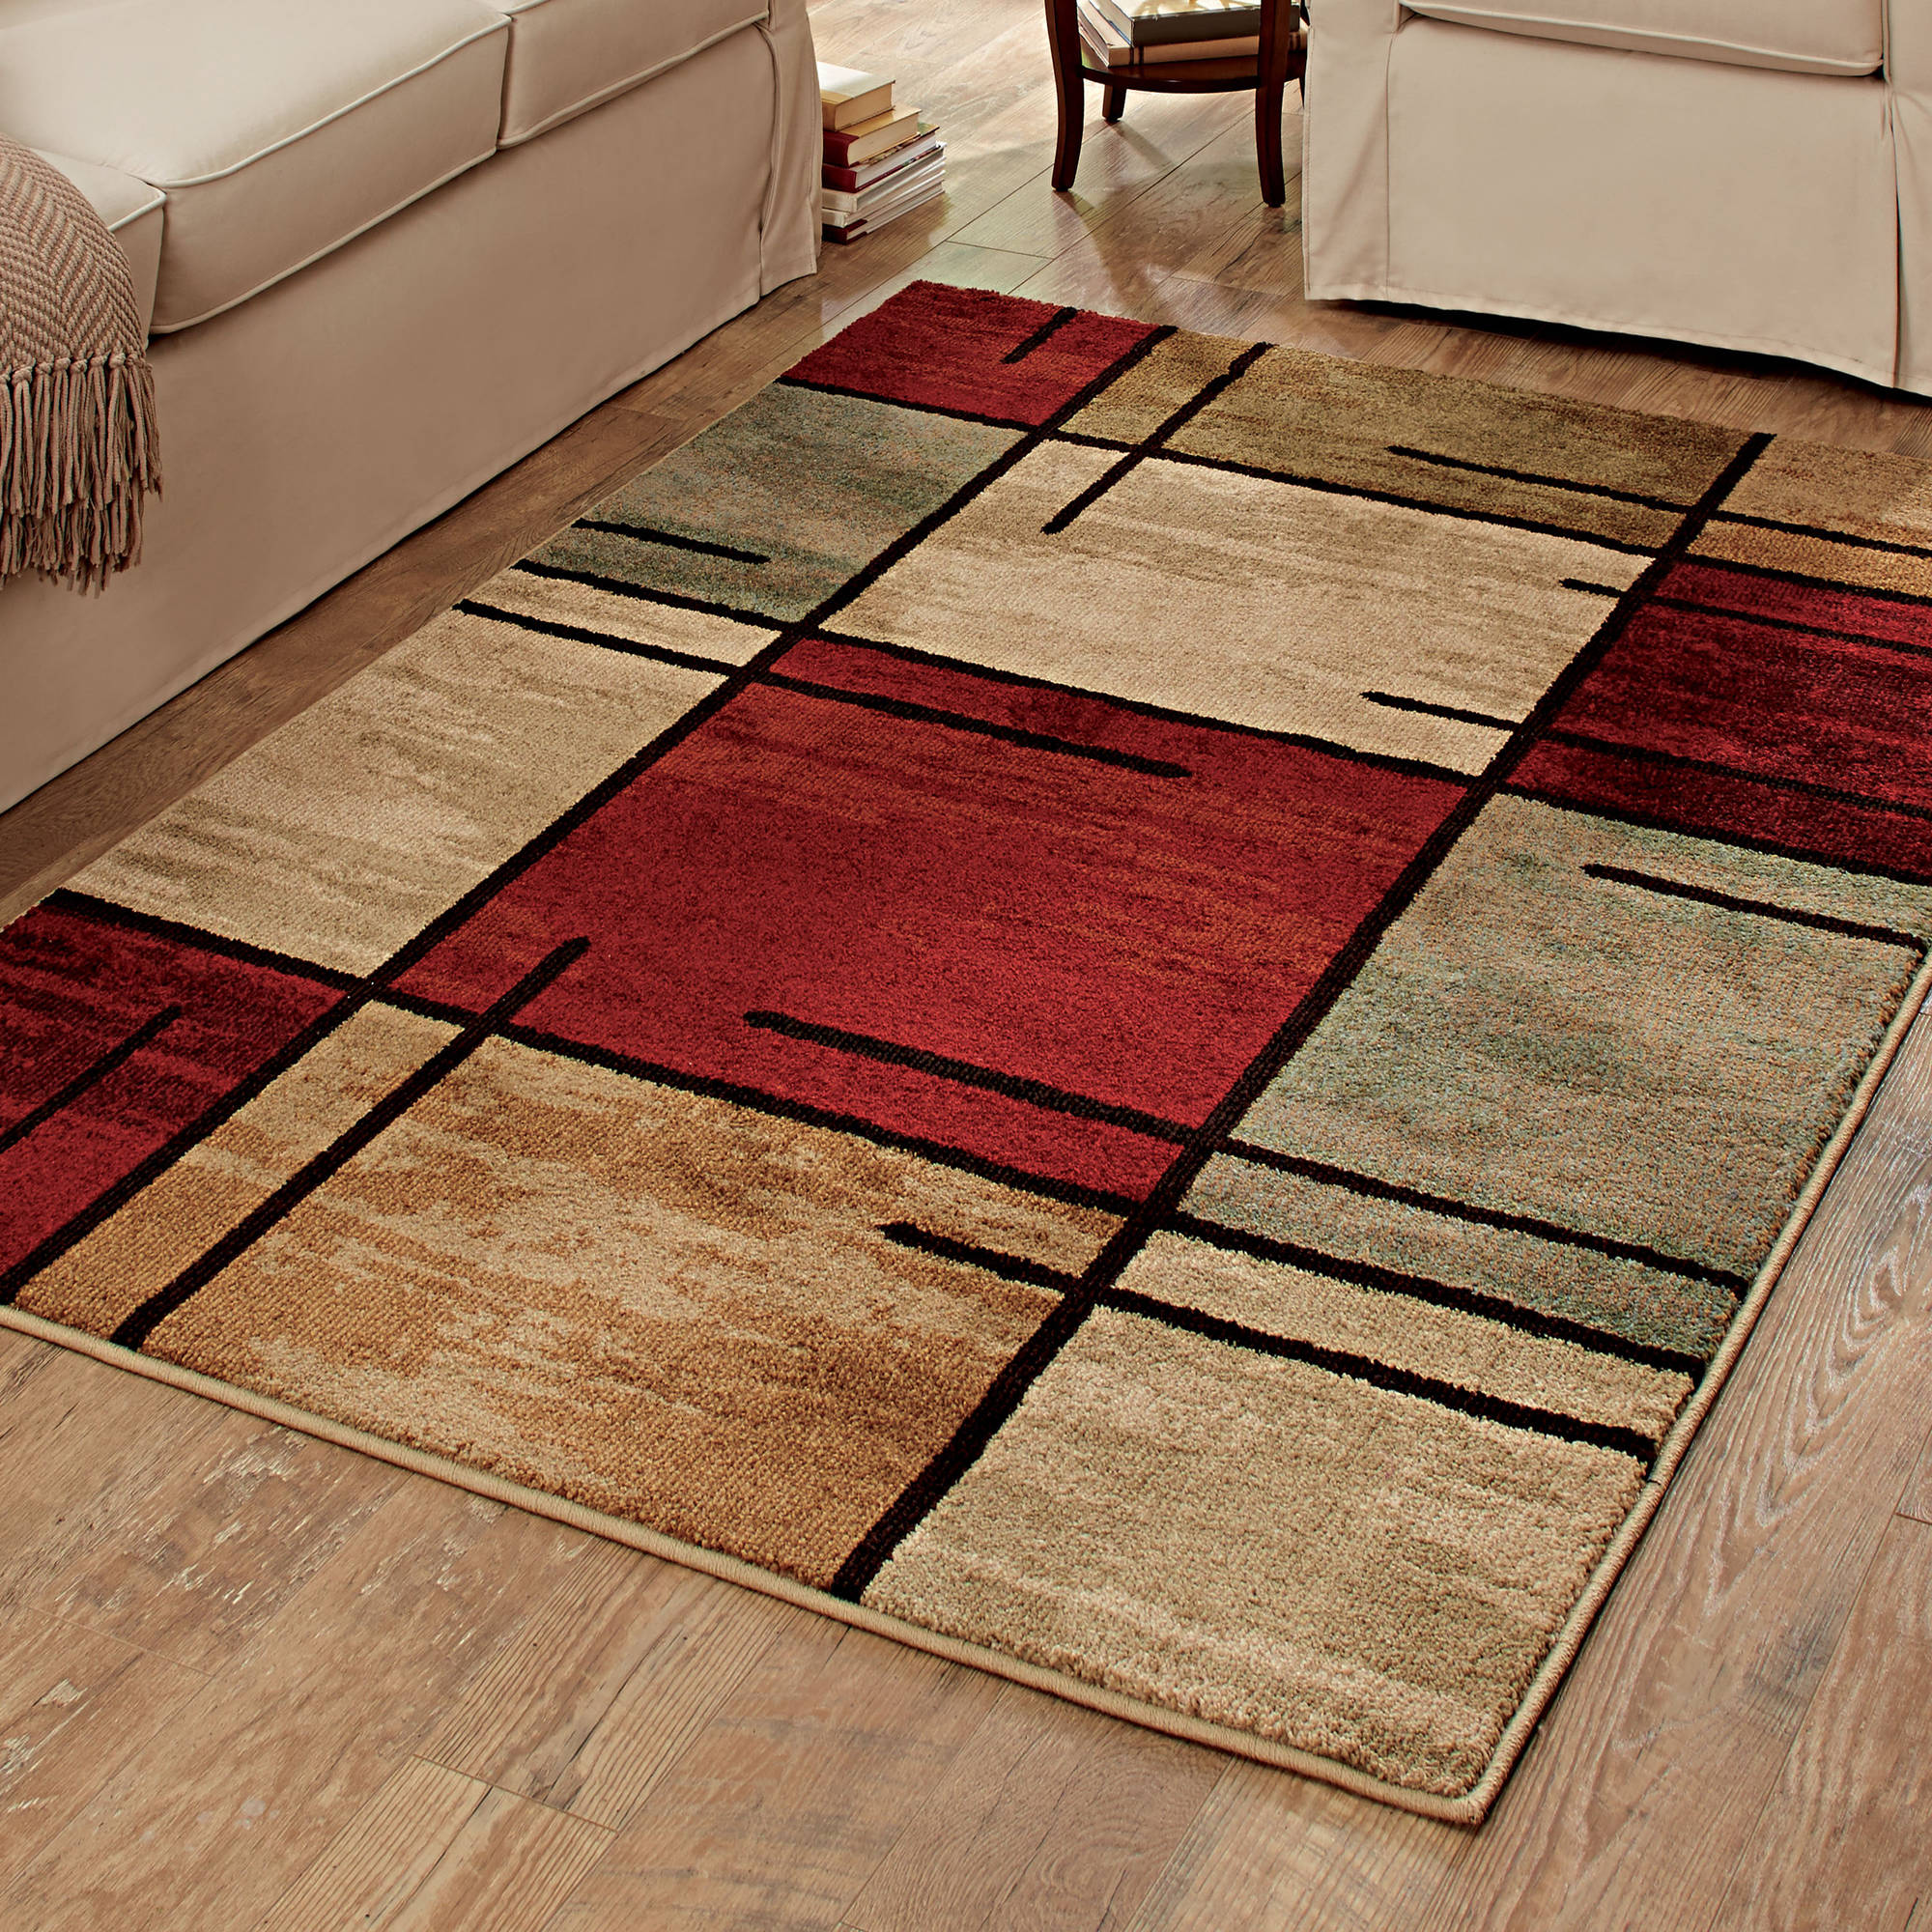 Better Homes and Gardens Spice Grid Area Rug - Walmart.com